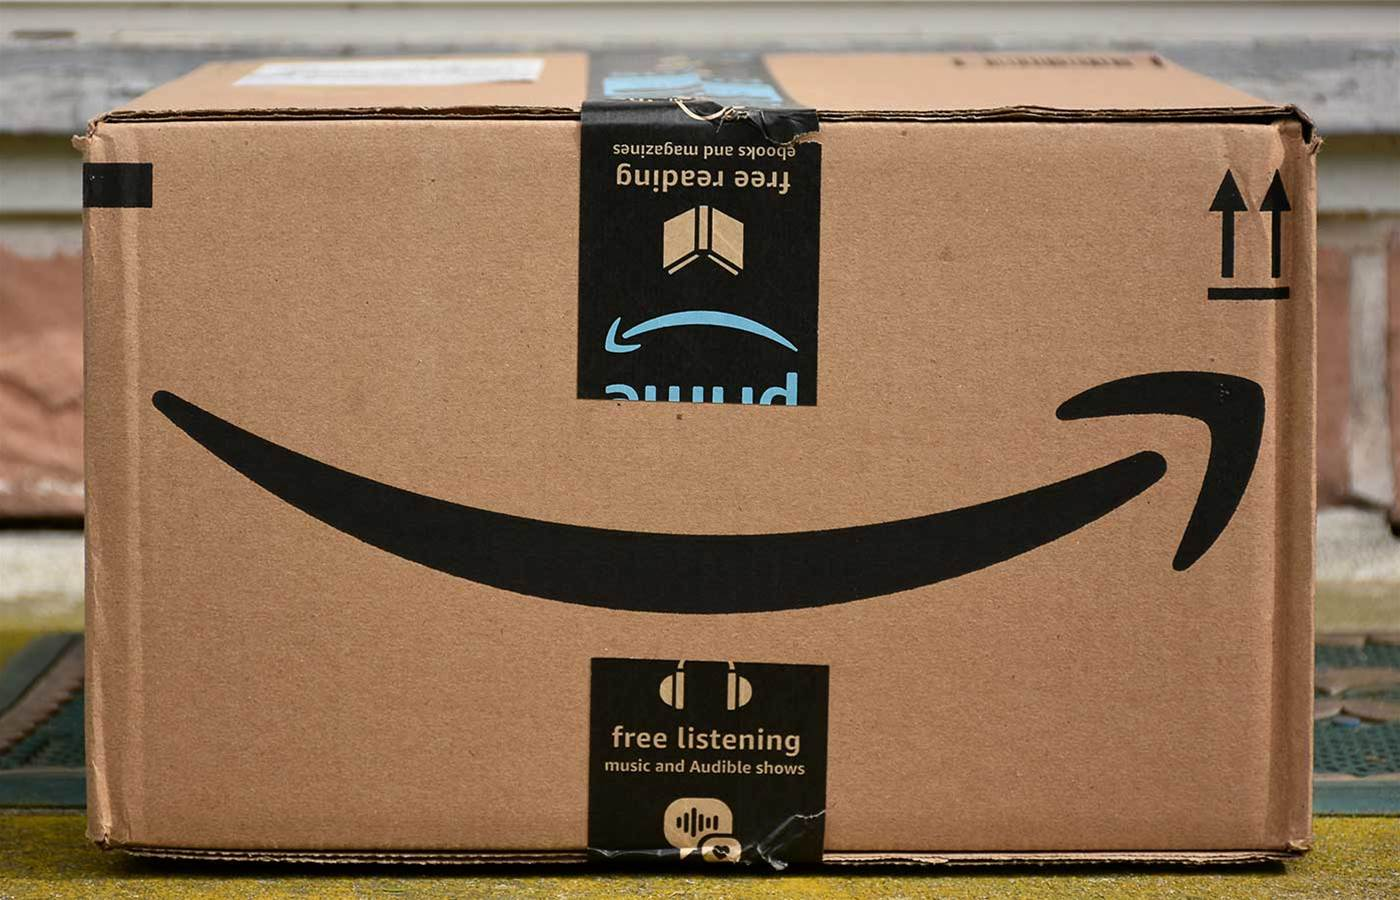 Amazon may face 10 million euro fine for market dominance